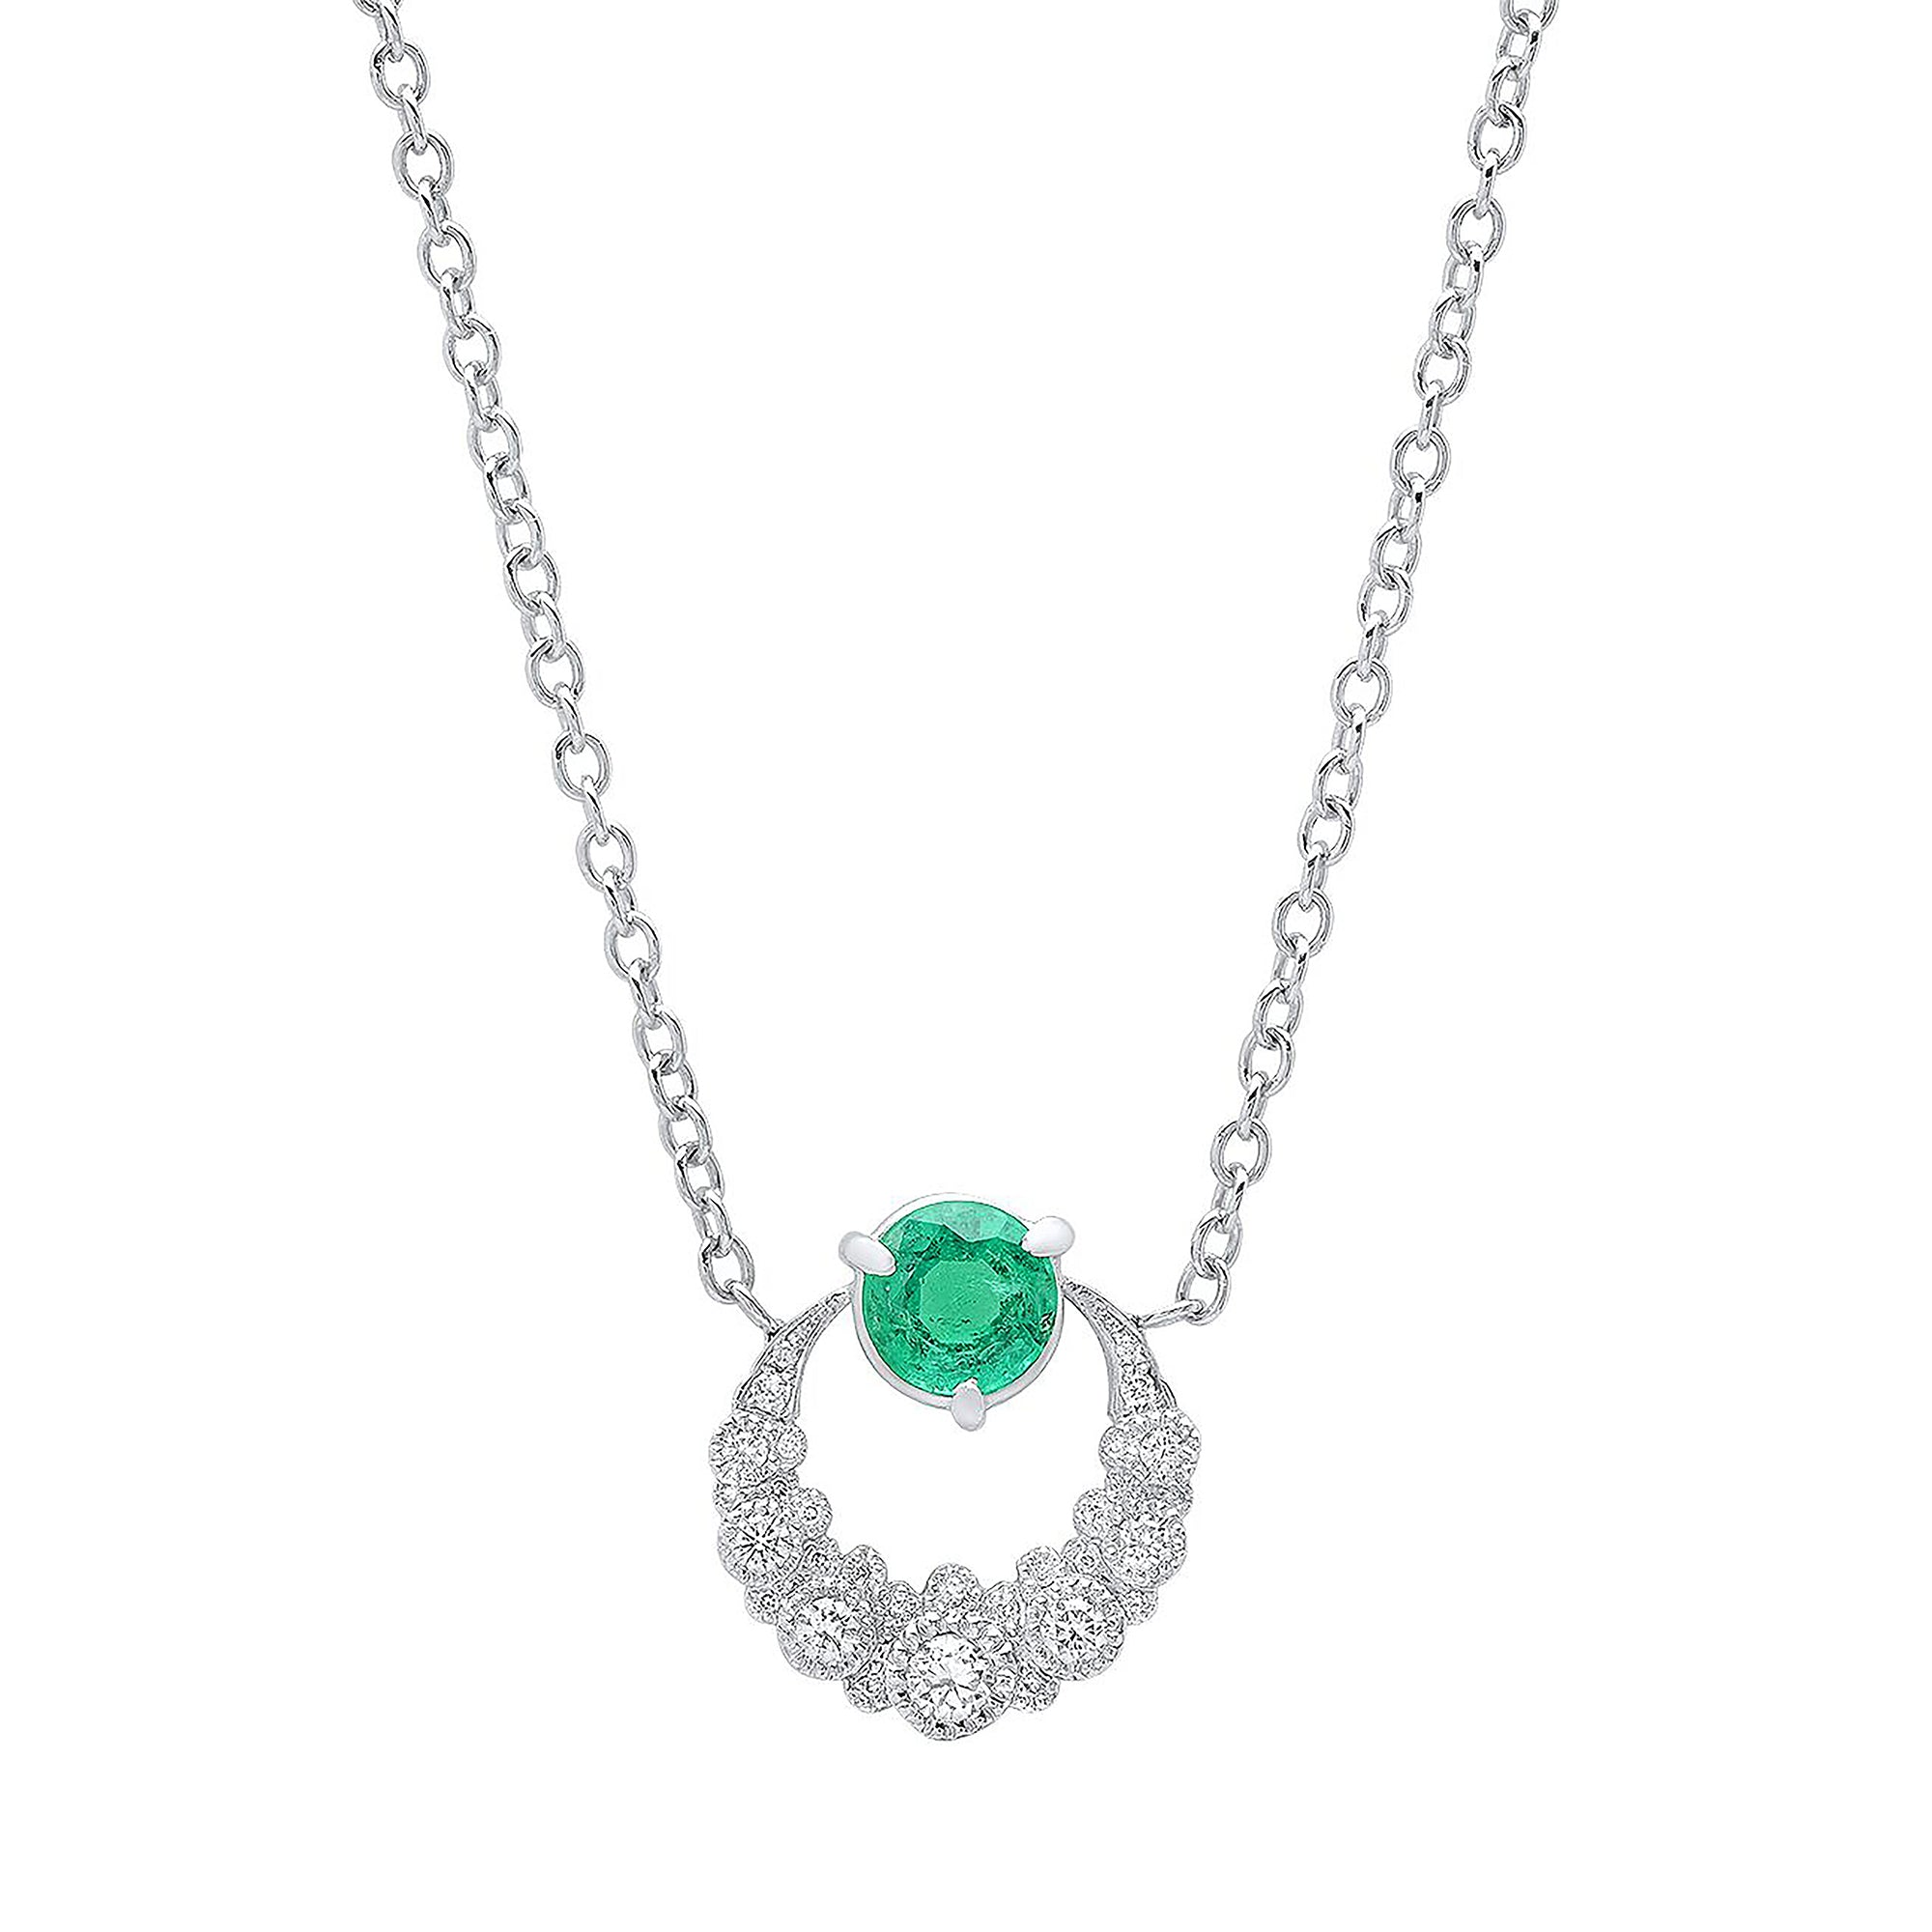 Emerald Moon Pendant Necklace by Colette for Broken English Jewelry